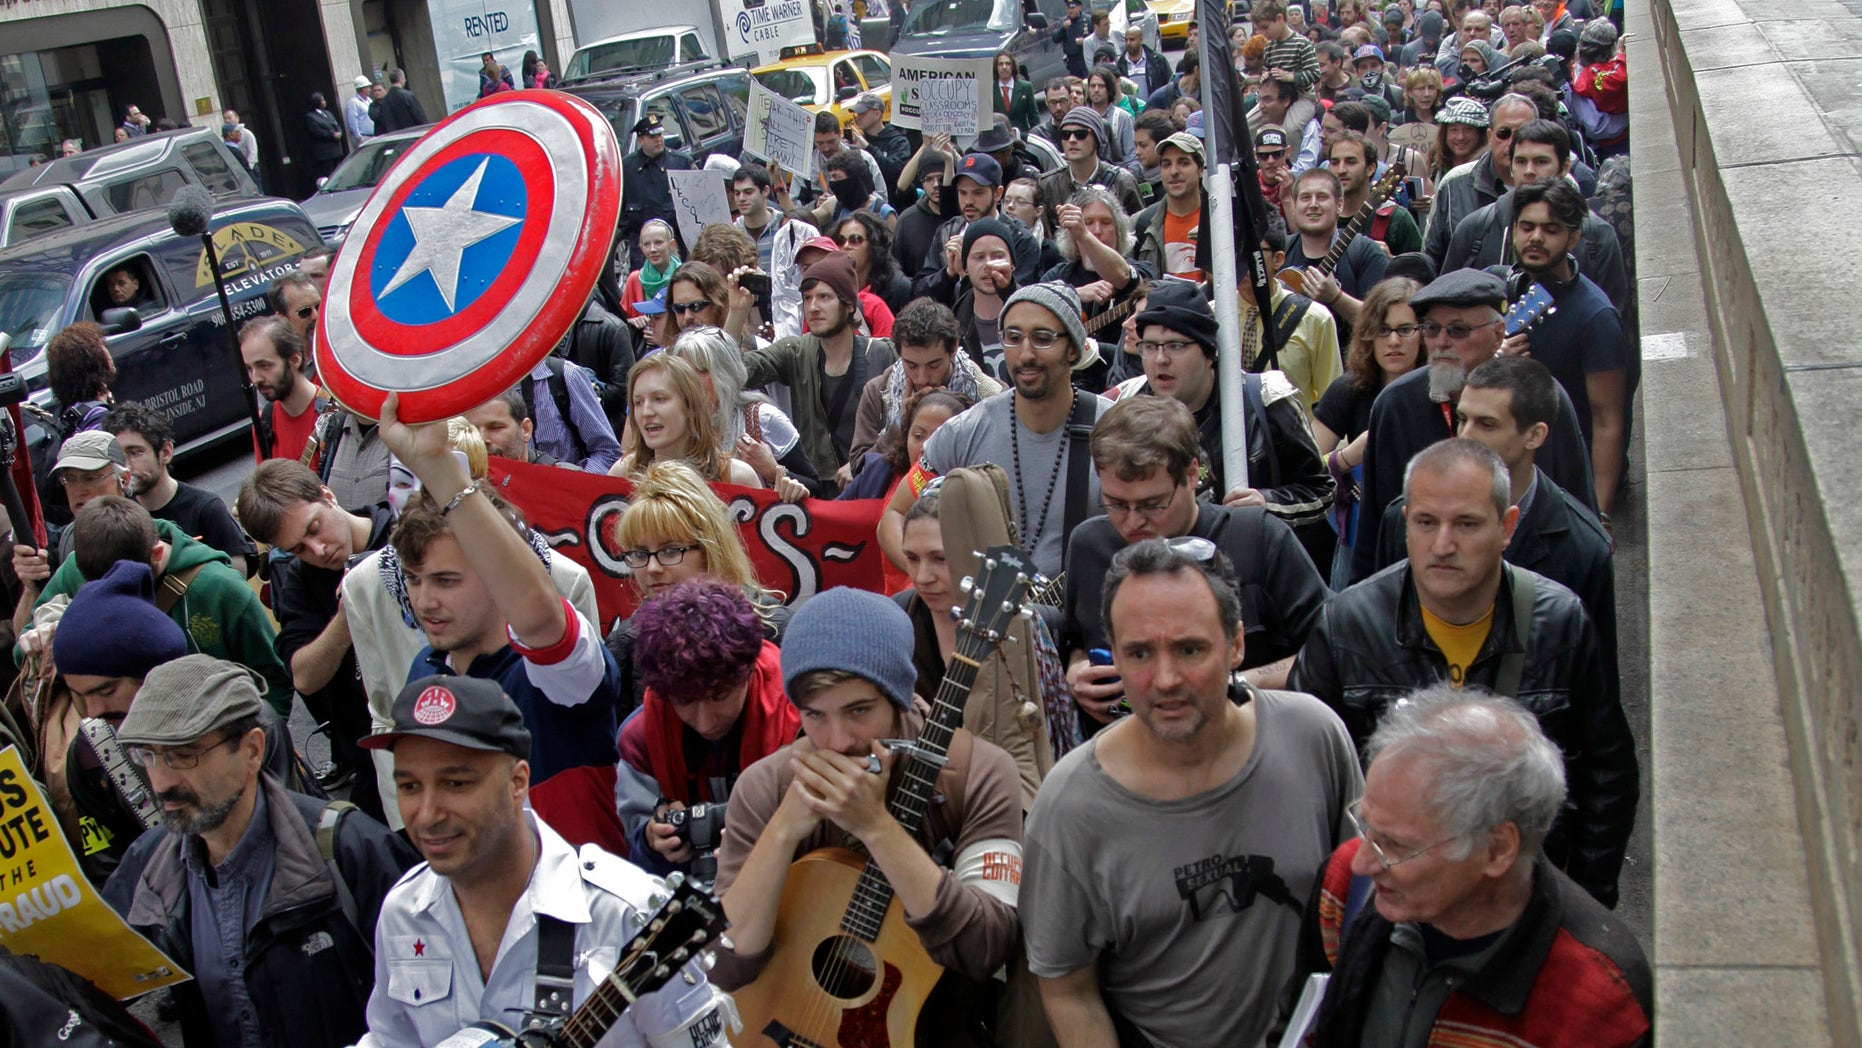 A coalition of activists join Occupy Wall Street in a May Day march from Bryant Park on Tuesday in New York. (AP Photo/Bebeto Matthews)